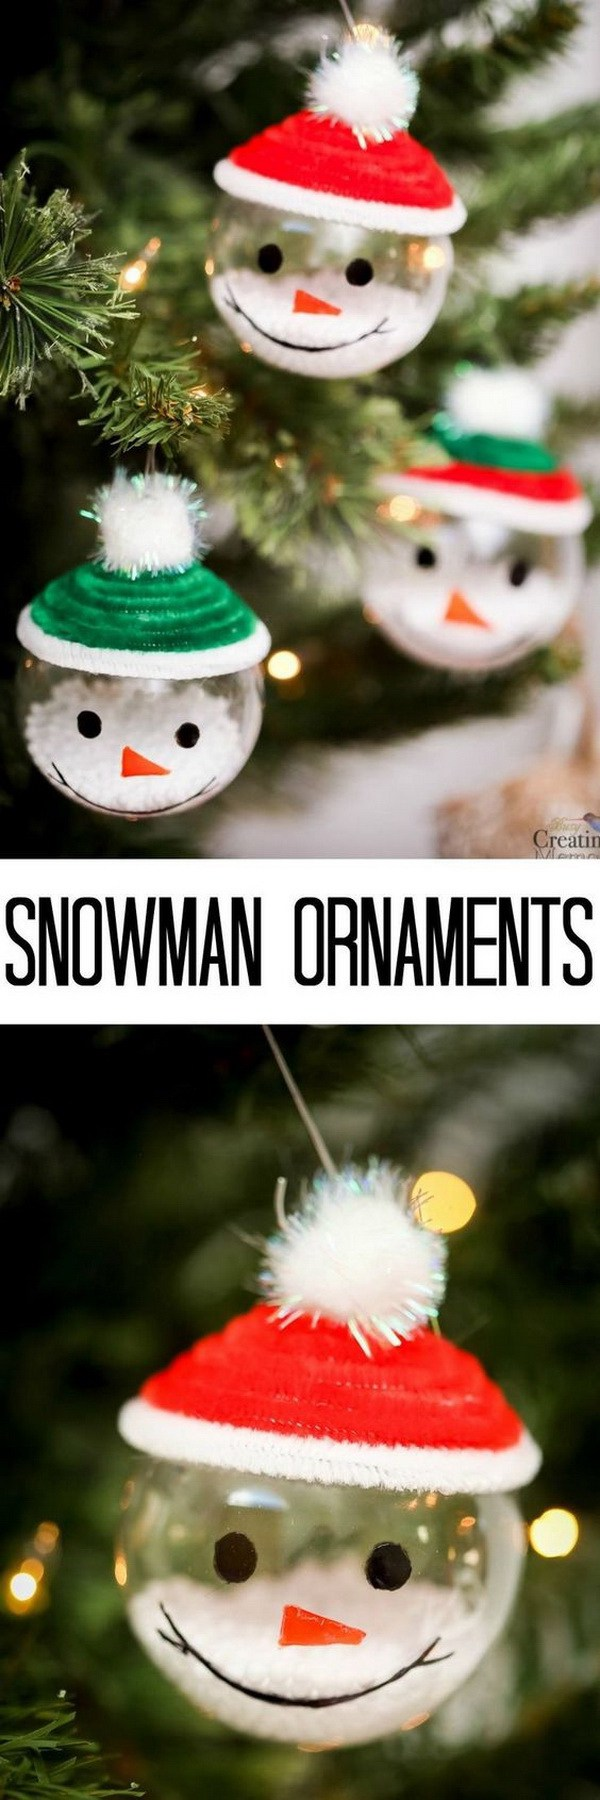 DIY Christmas Tree Ornaments: 17 Great Tutorials and Ideas (Part 1)